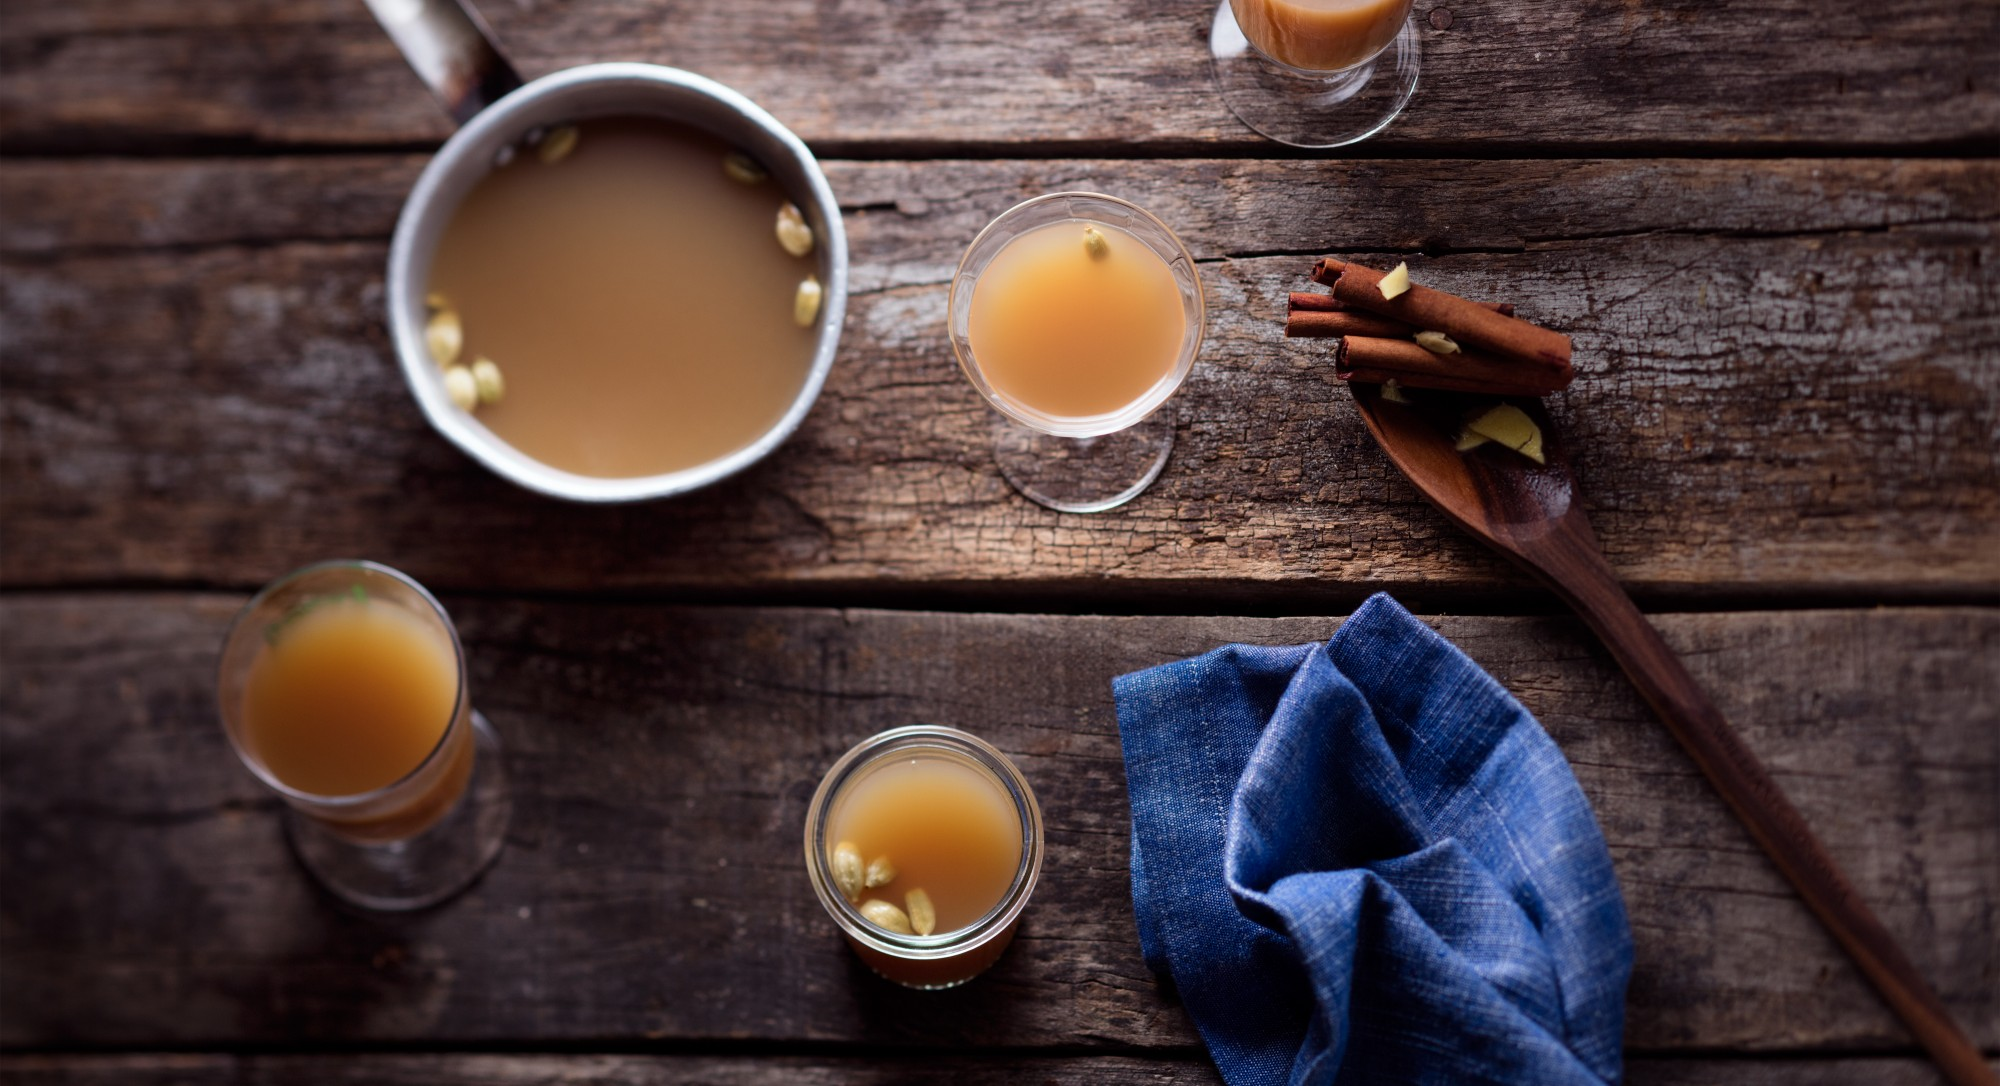 Move Over, Pumpkin Spice! Chai-Spiced Cider Is Our Favorite Fall Drink